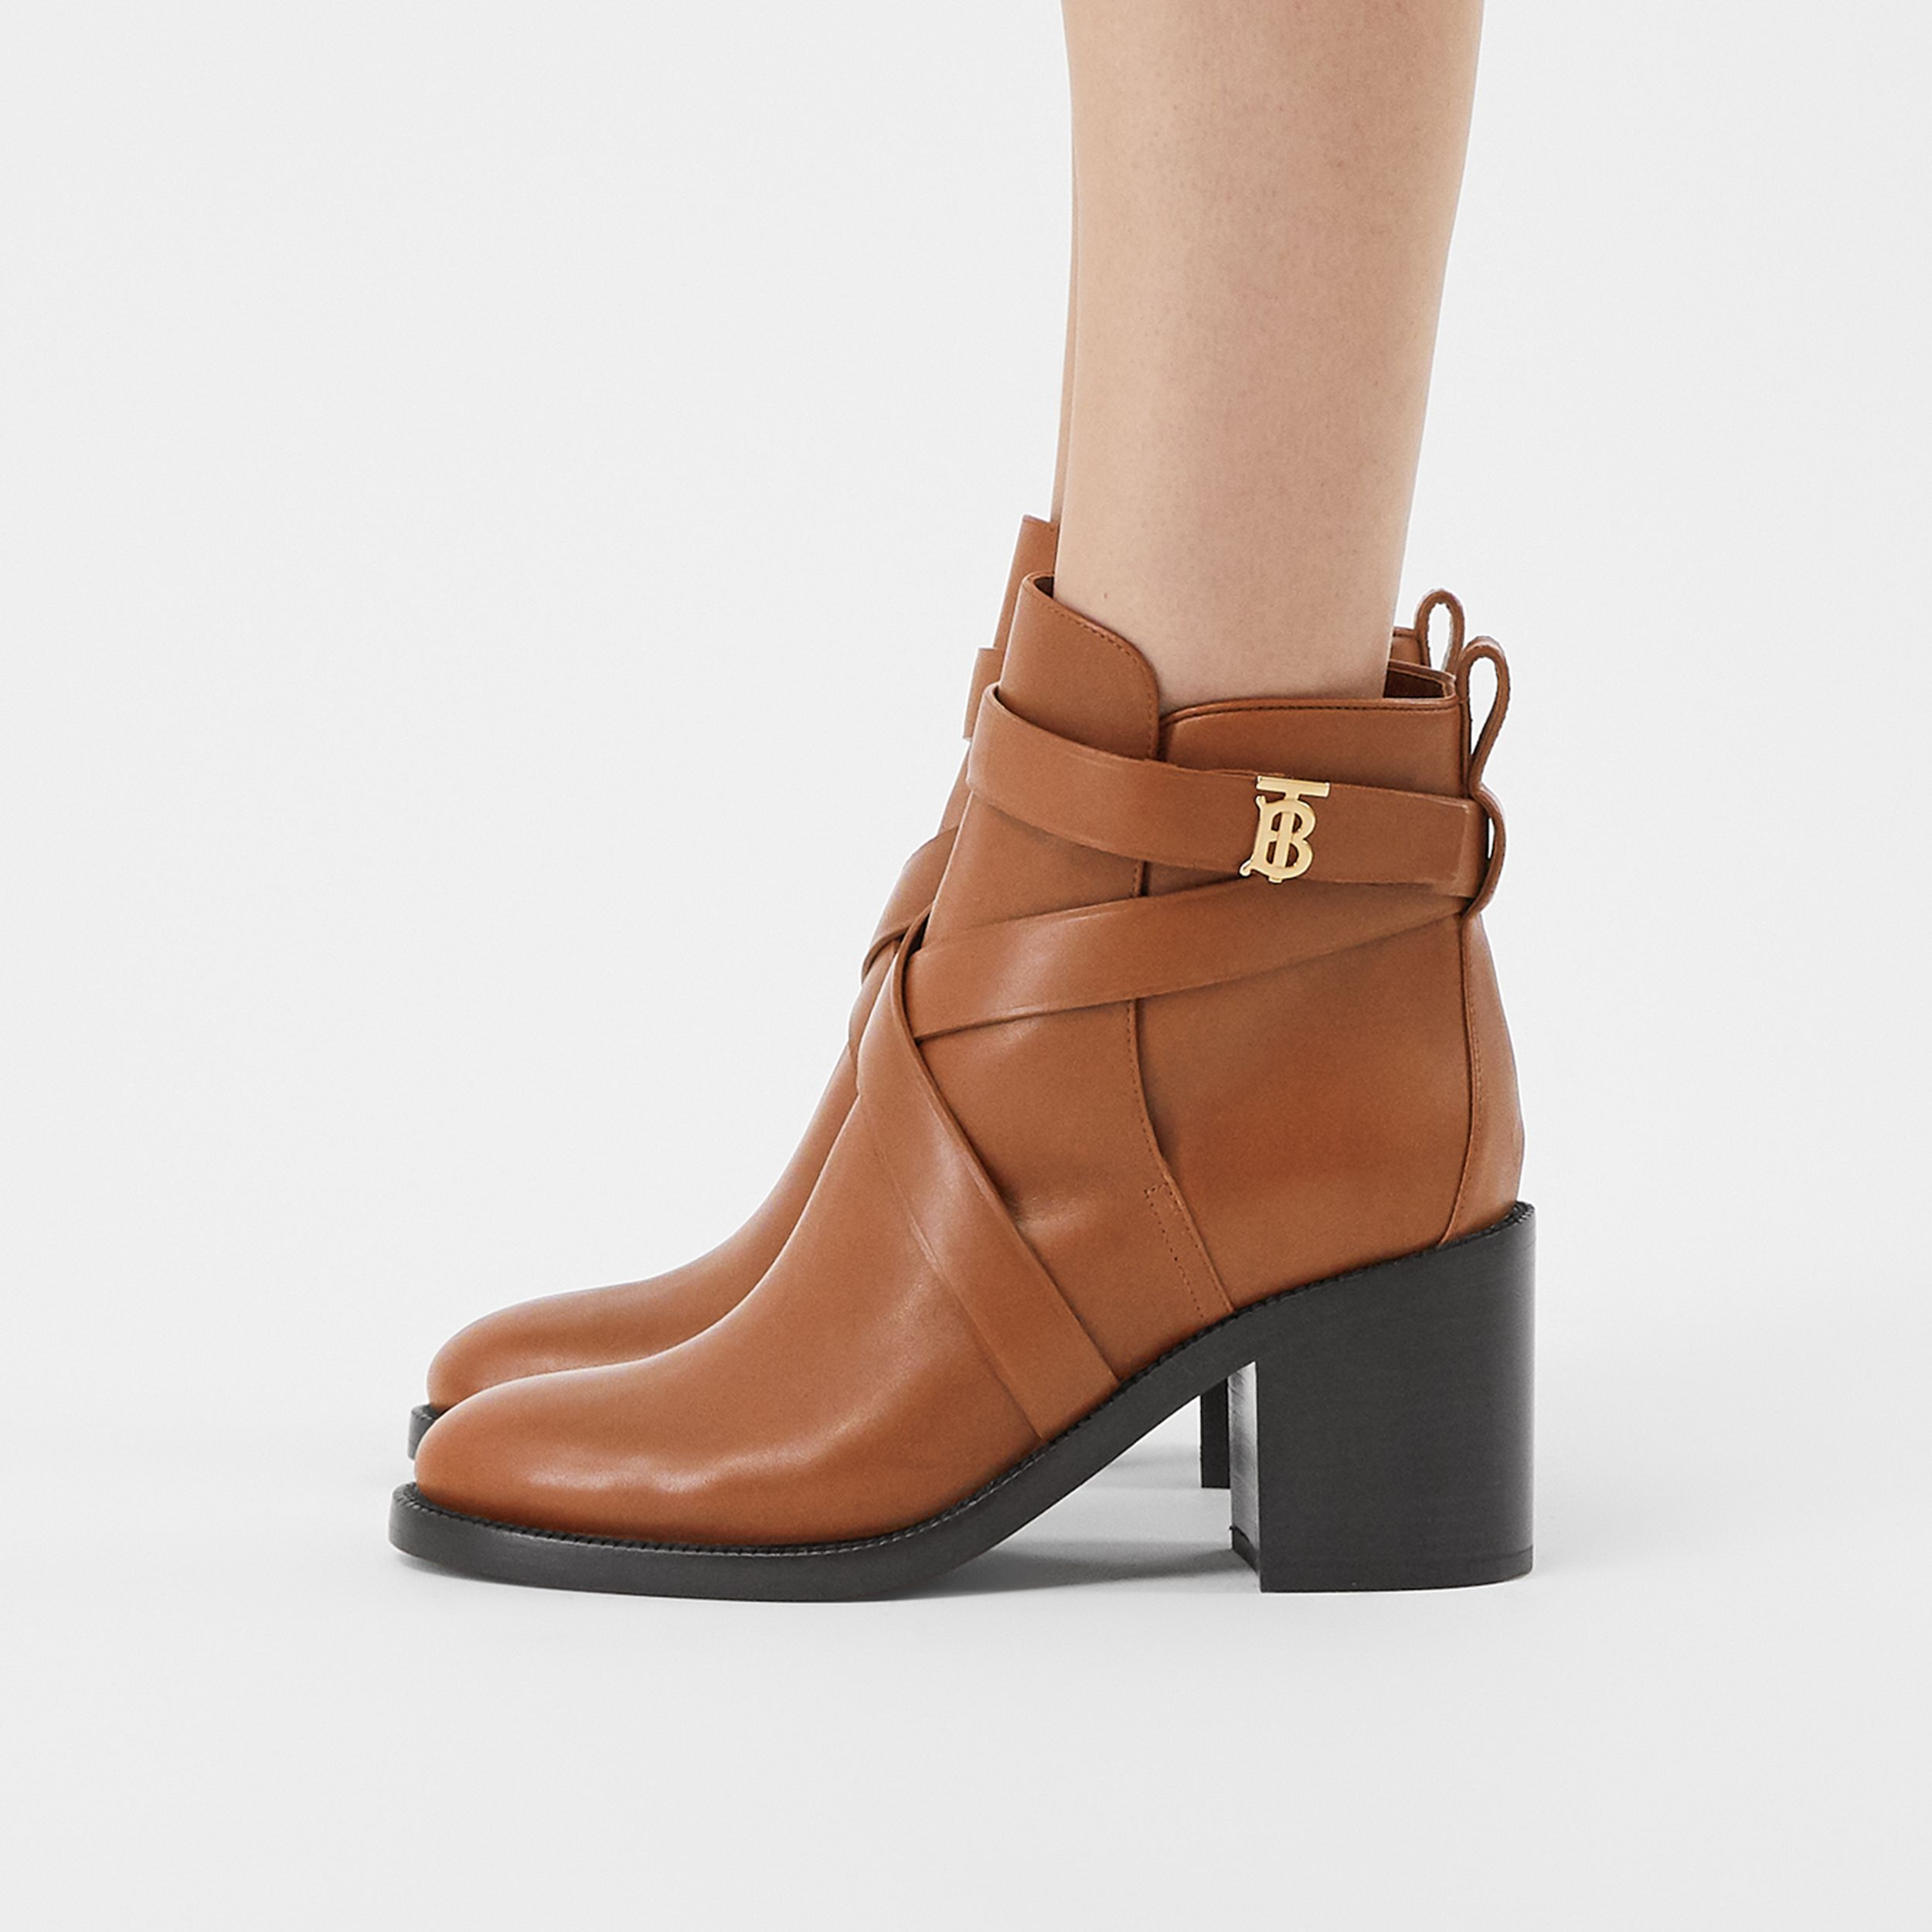 Monogram Motif Leather Ankle Boots in Tan - Women | Burberry United States - 3